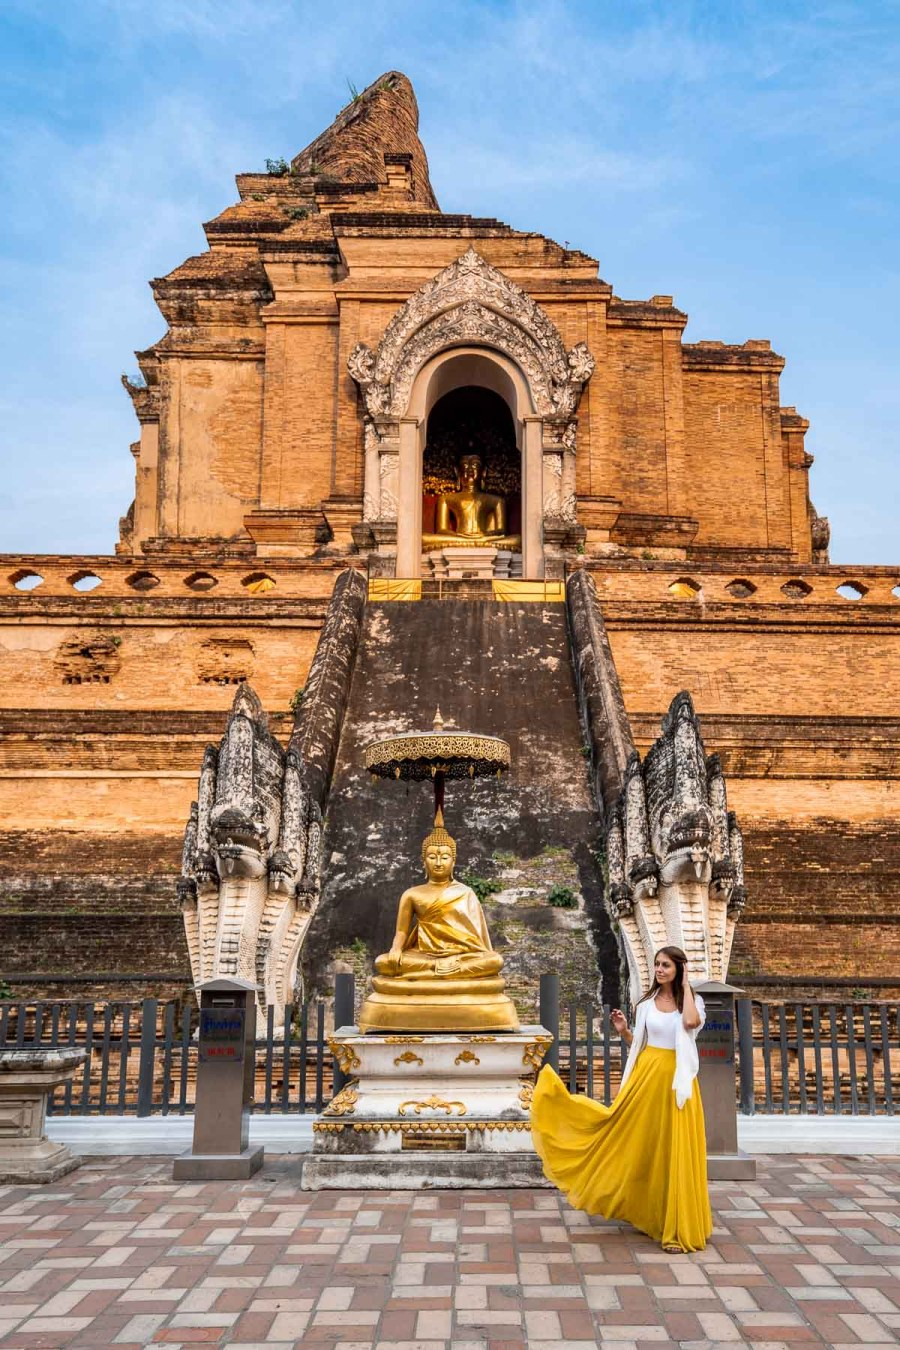 Girl in a yellow skirt in front of the Wat Chedi Luang Temple in Chiang Mai